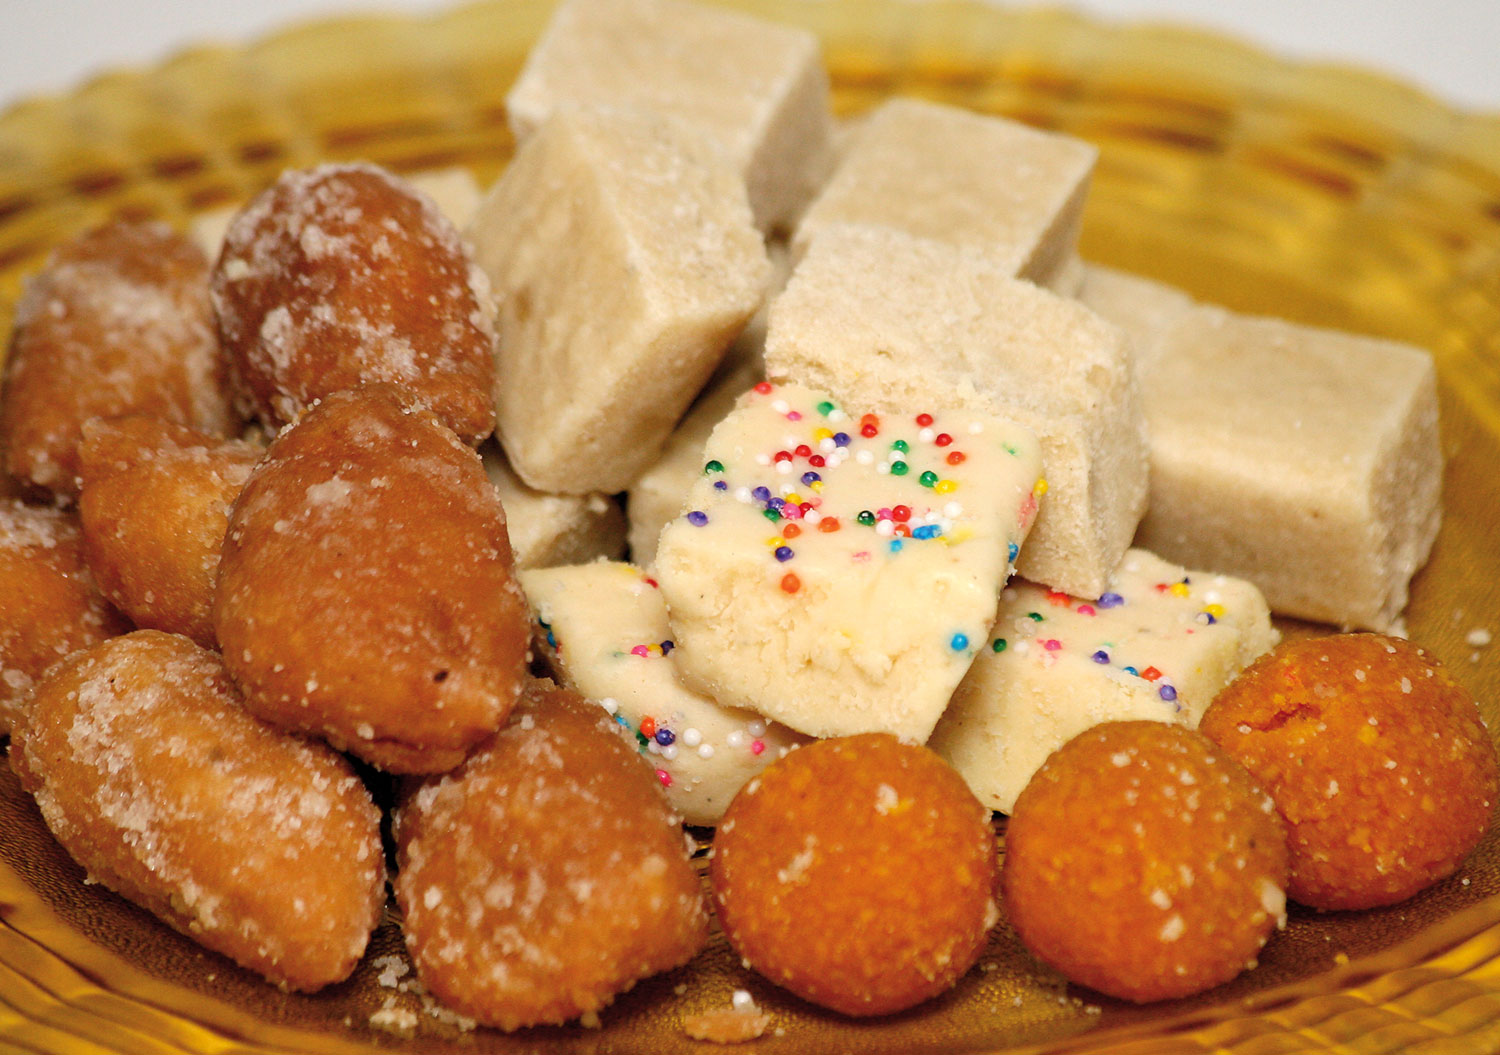 Indian sweets from Chennette's blog: gulab jamoon (left) and barfi. Photograph by Shirley Bahadur